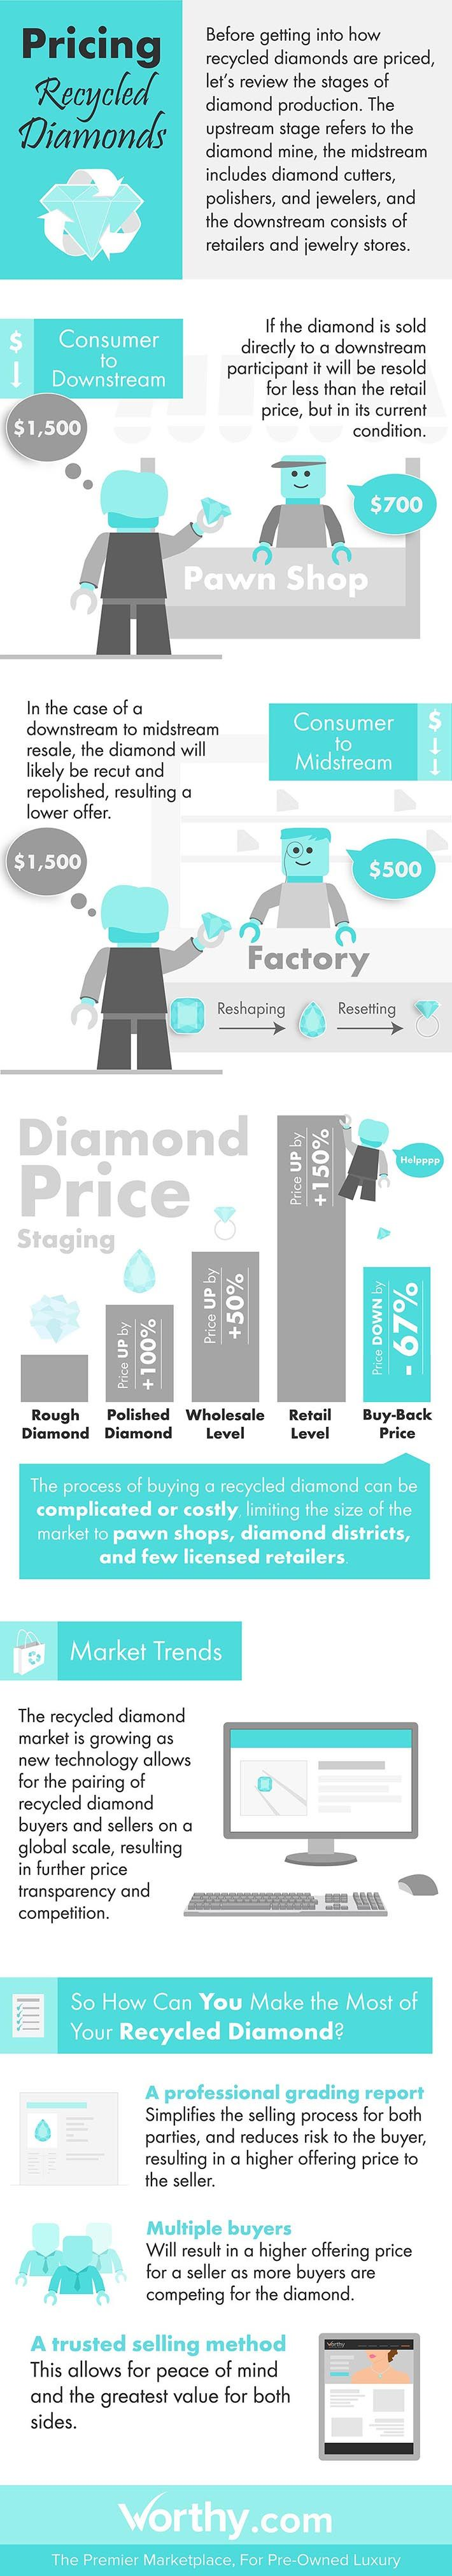 best environmental degradation ideas yanko  exploring diamond pricing pt 2 recycled diamonds infographic engagement ring guideenvironmental degradationhealthy